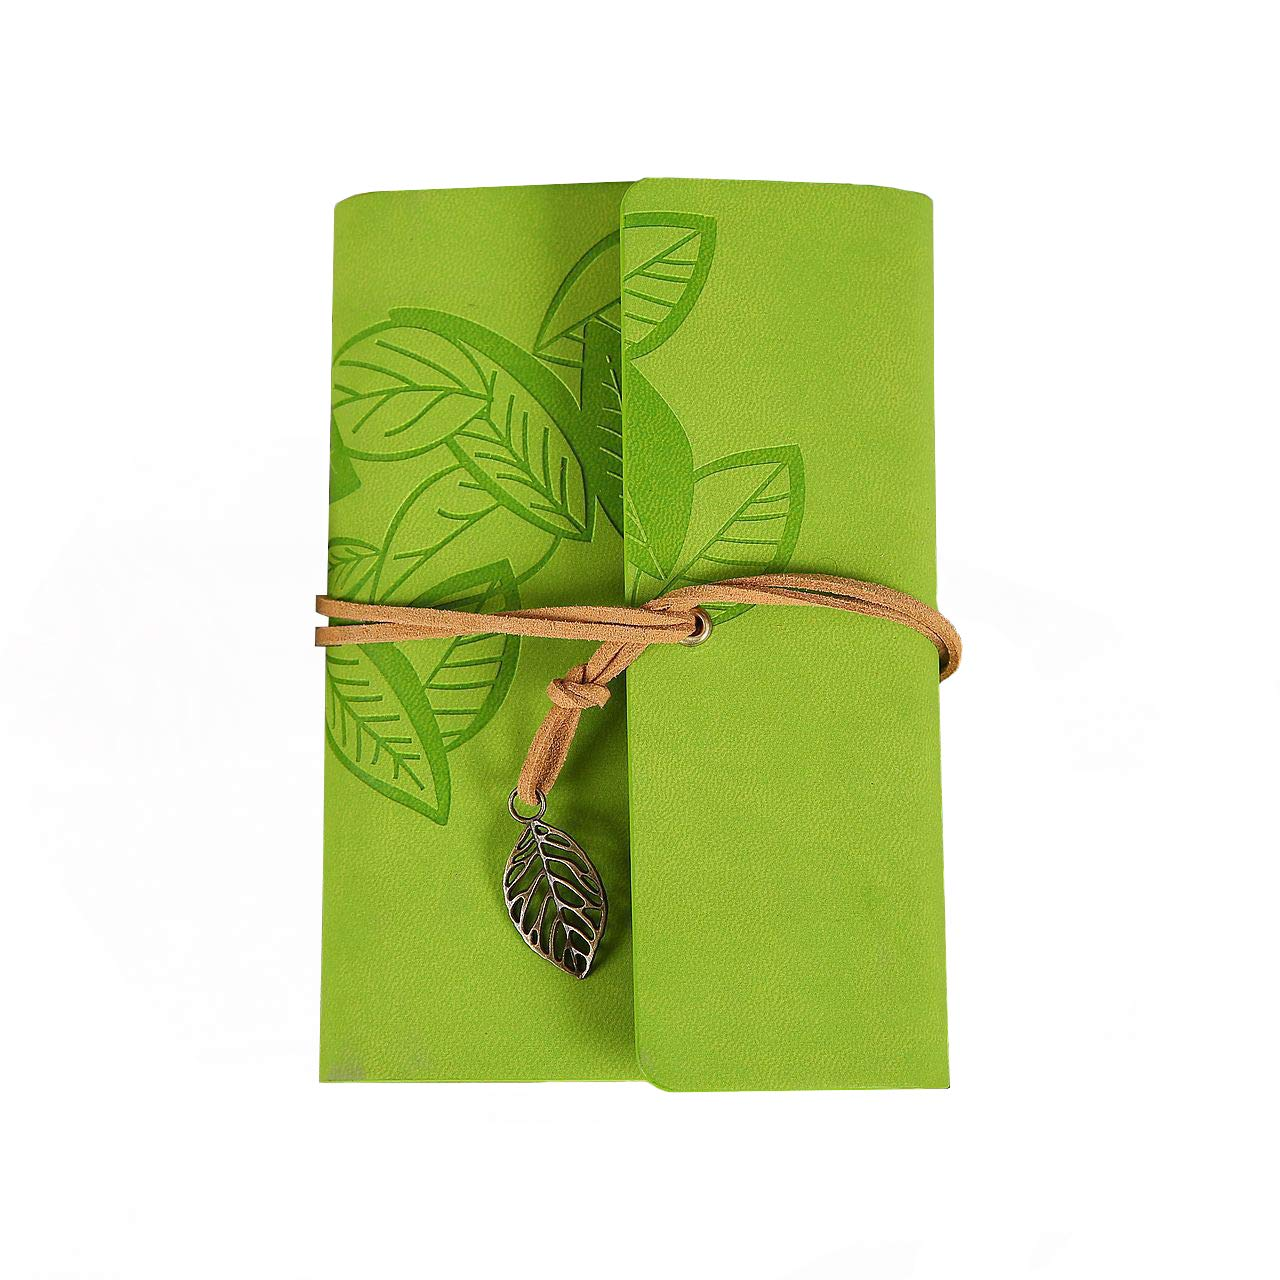 Electomania® Creative Vintage PU Leather Travel Notebook Blank Notepad String Loose Leaf Charm Diary (Grass Green) (B07M87JYH7) Amazon Price History, Amazon Price Tracker